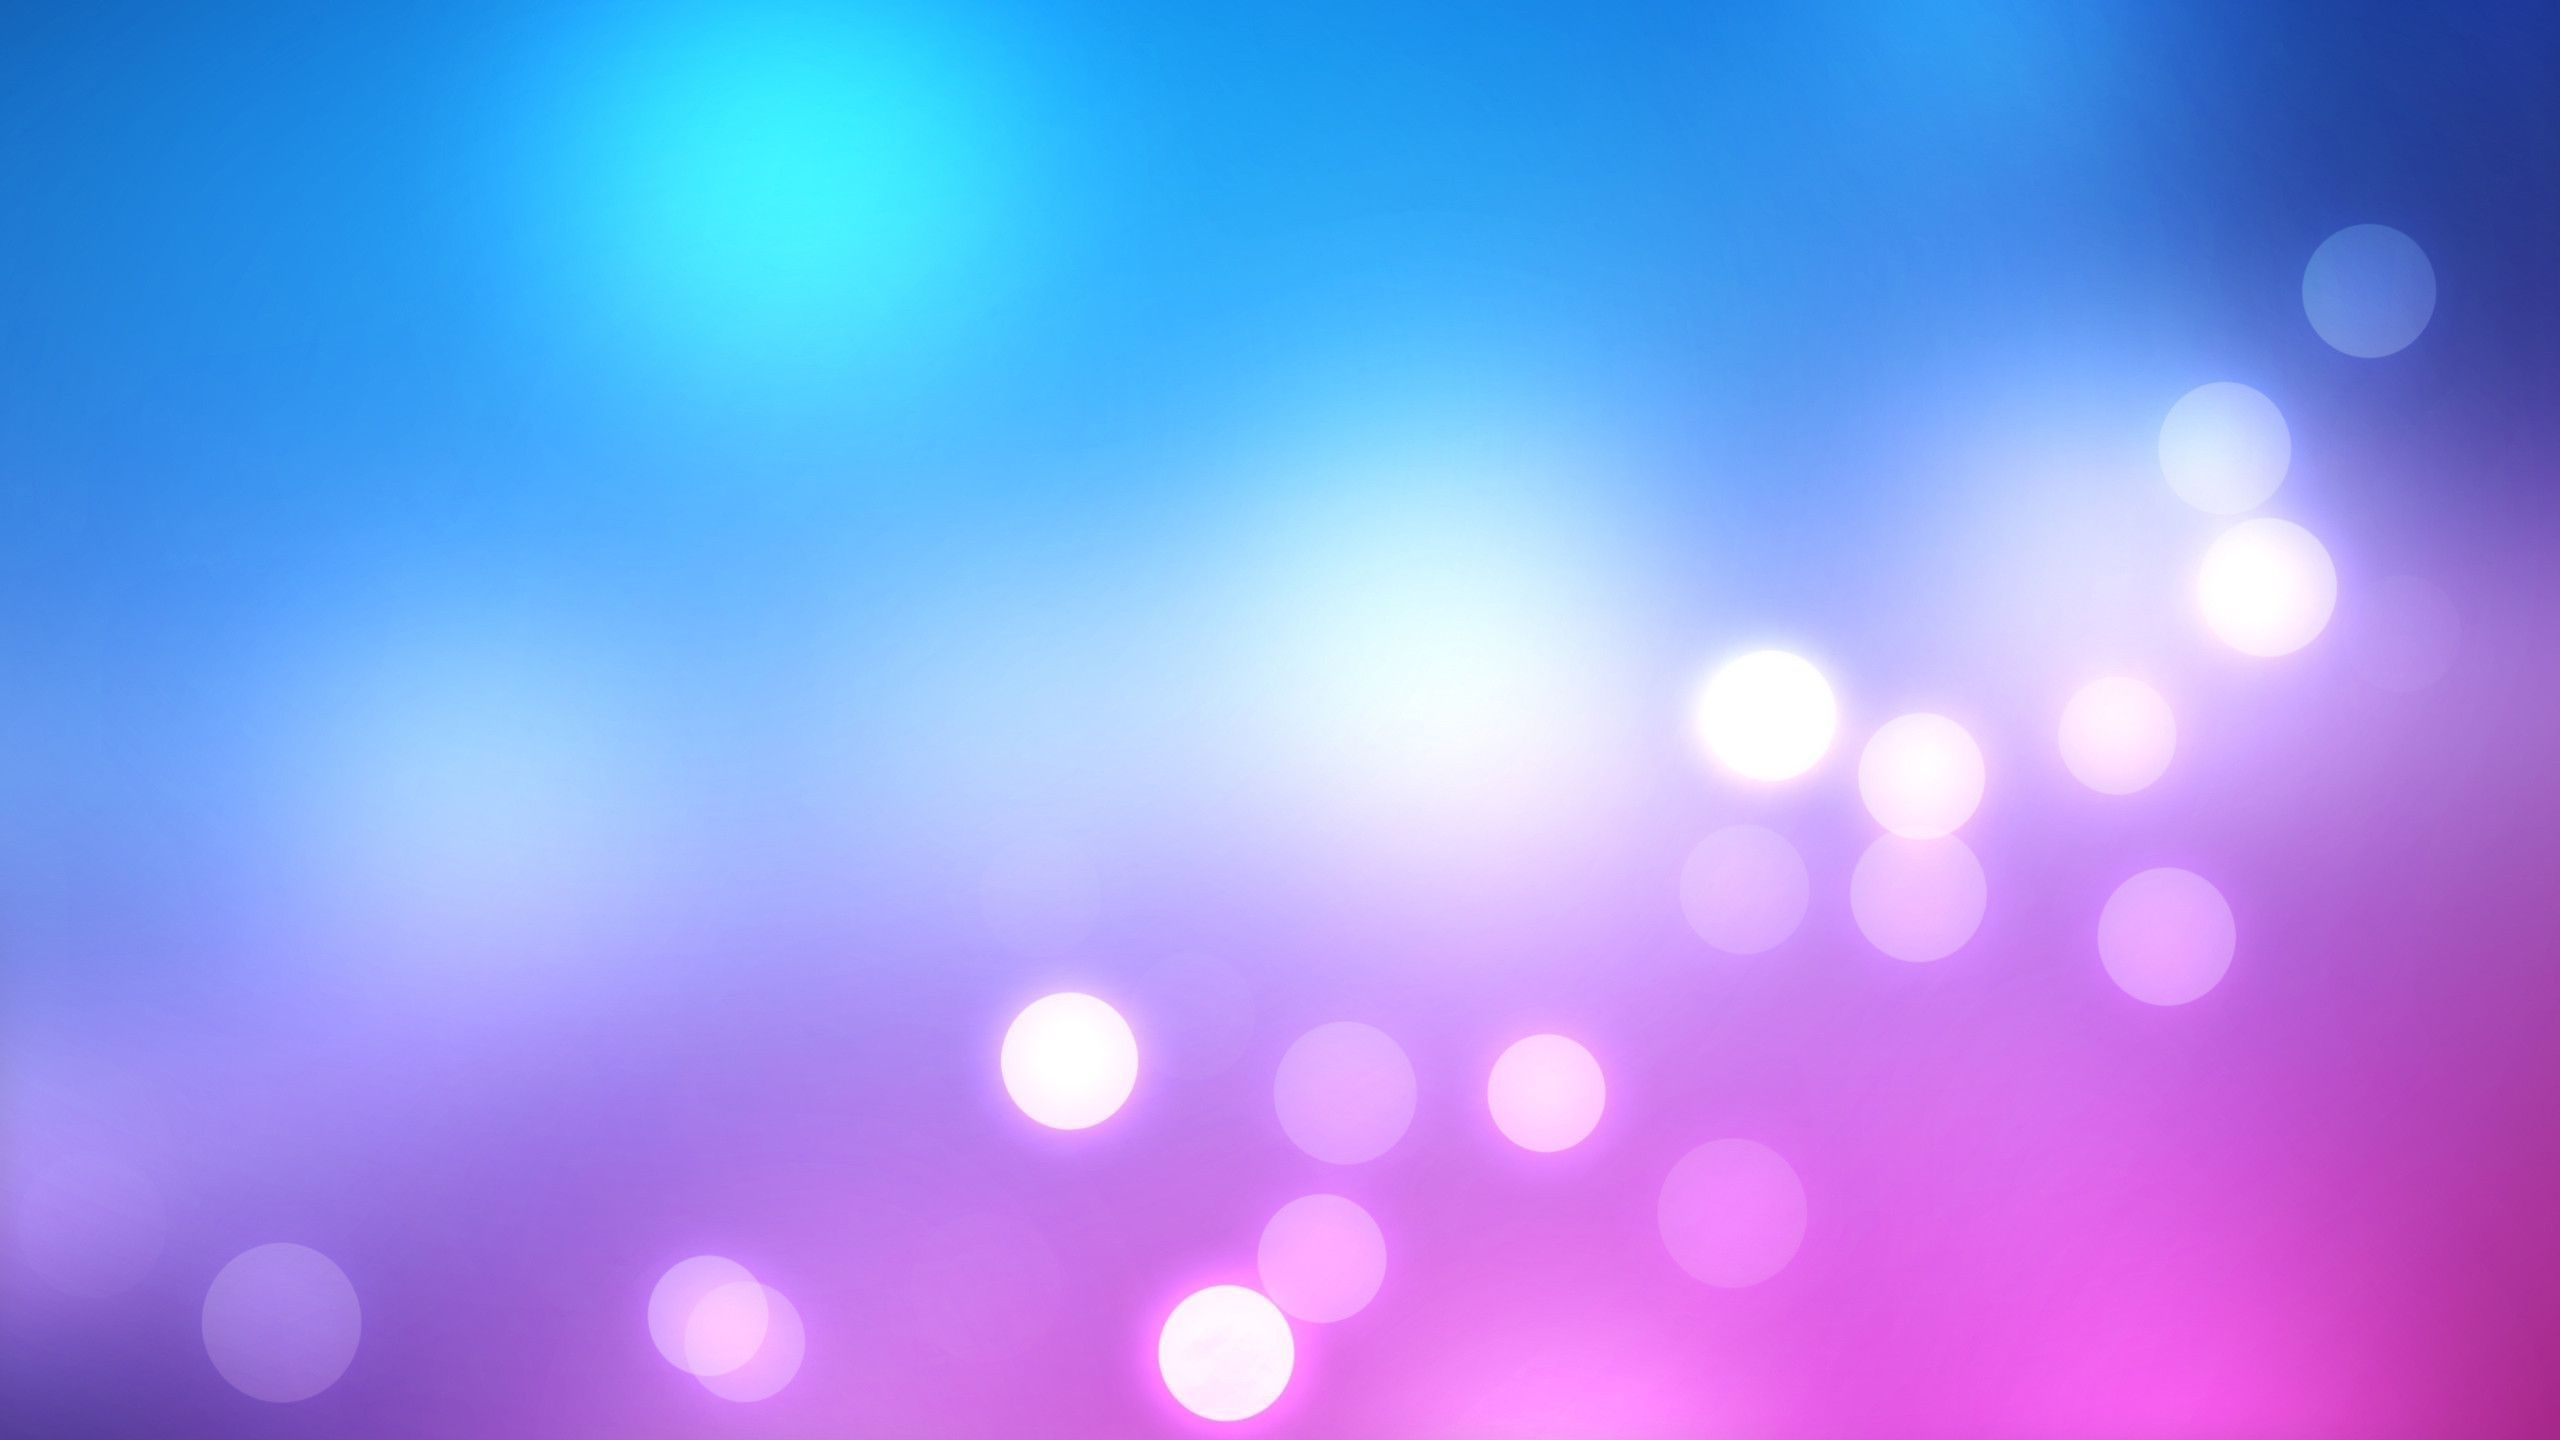 pink purple and blue backgrounds - wallpaper cave | images